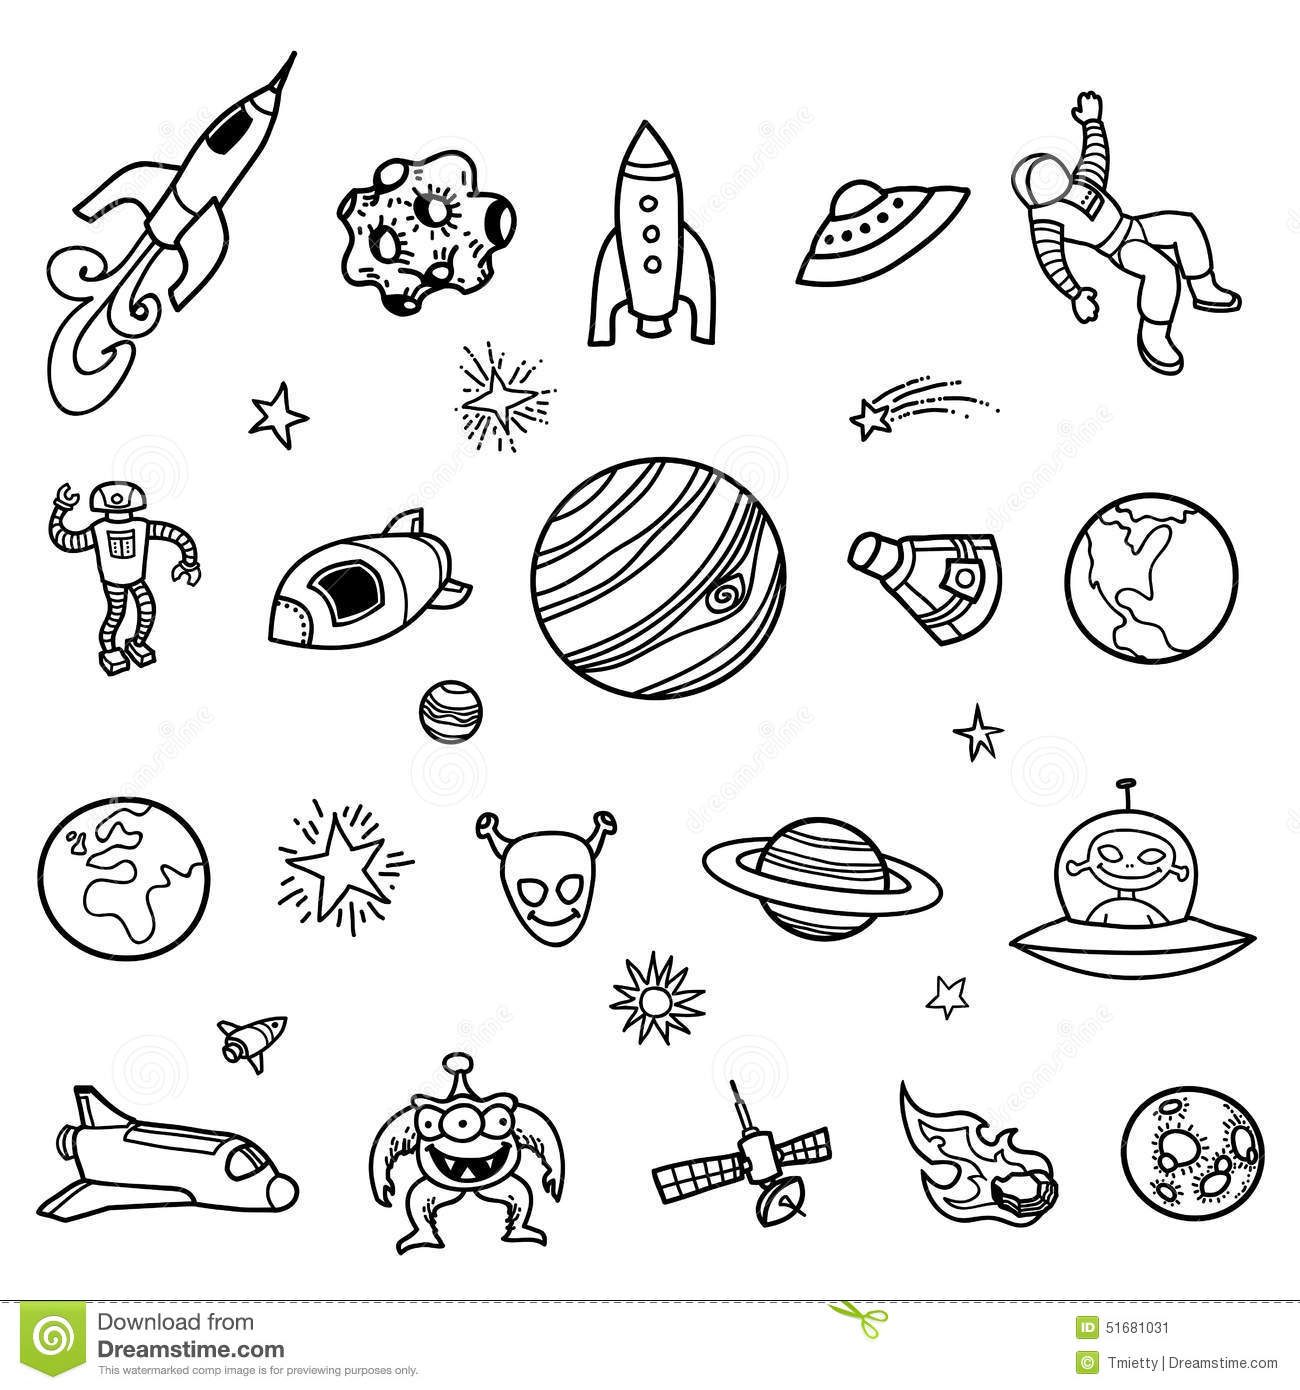 astronomy doodles - photo #44